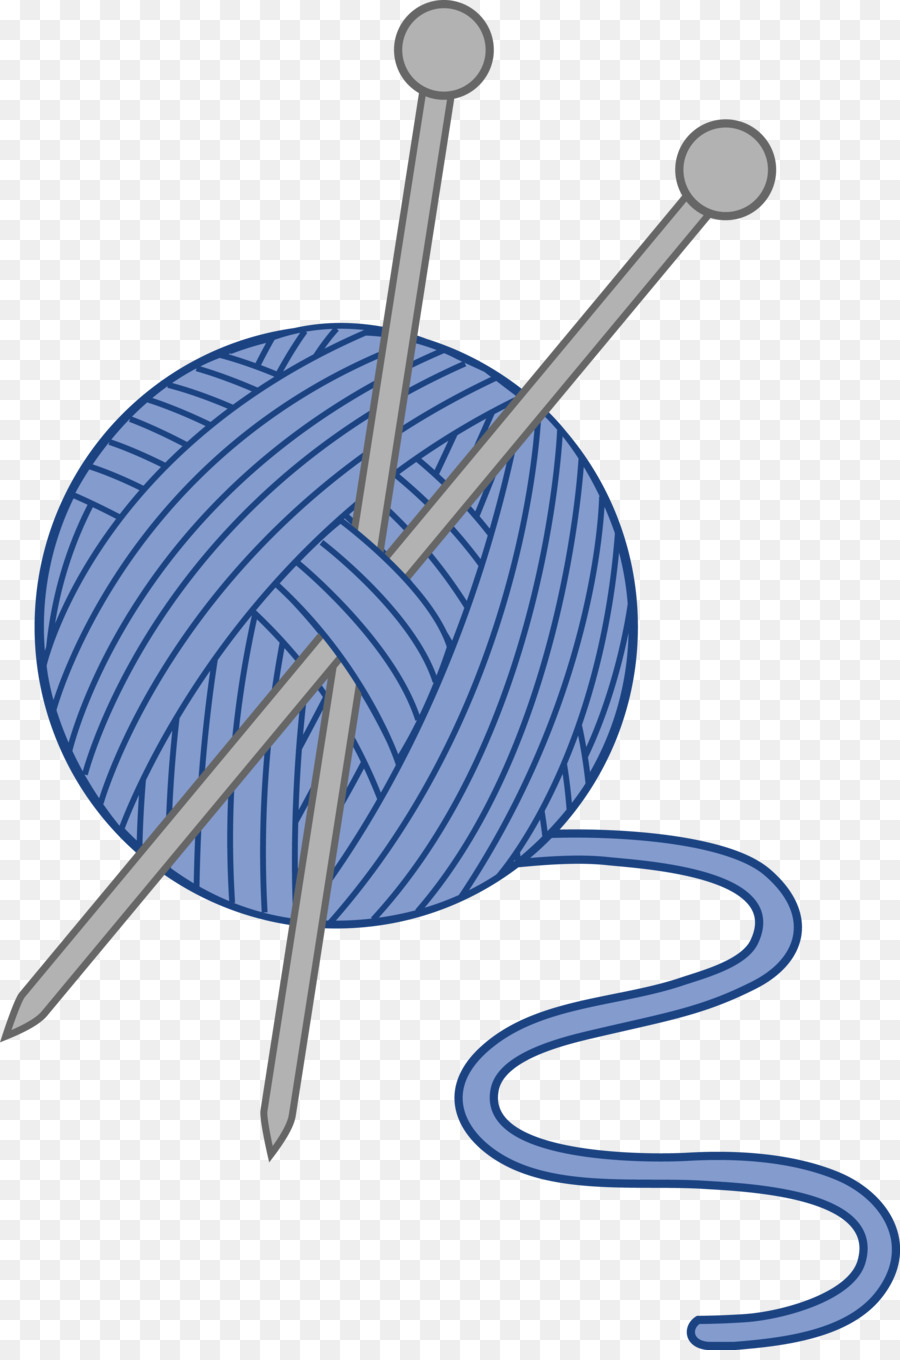 knitting needles clipart Knitting needle Hand.